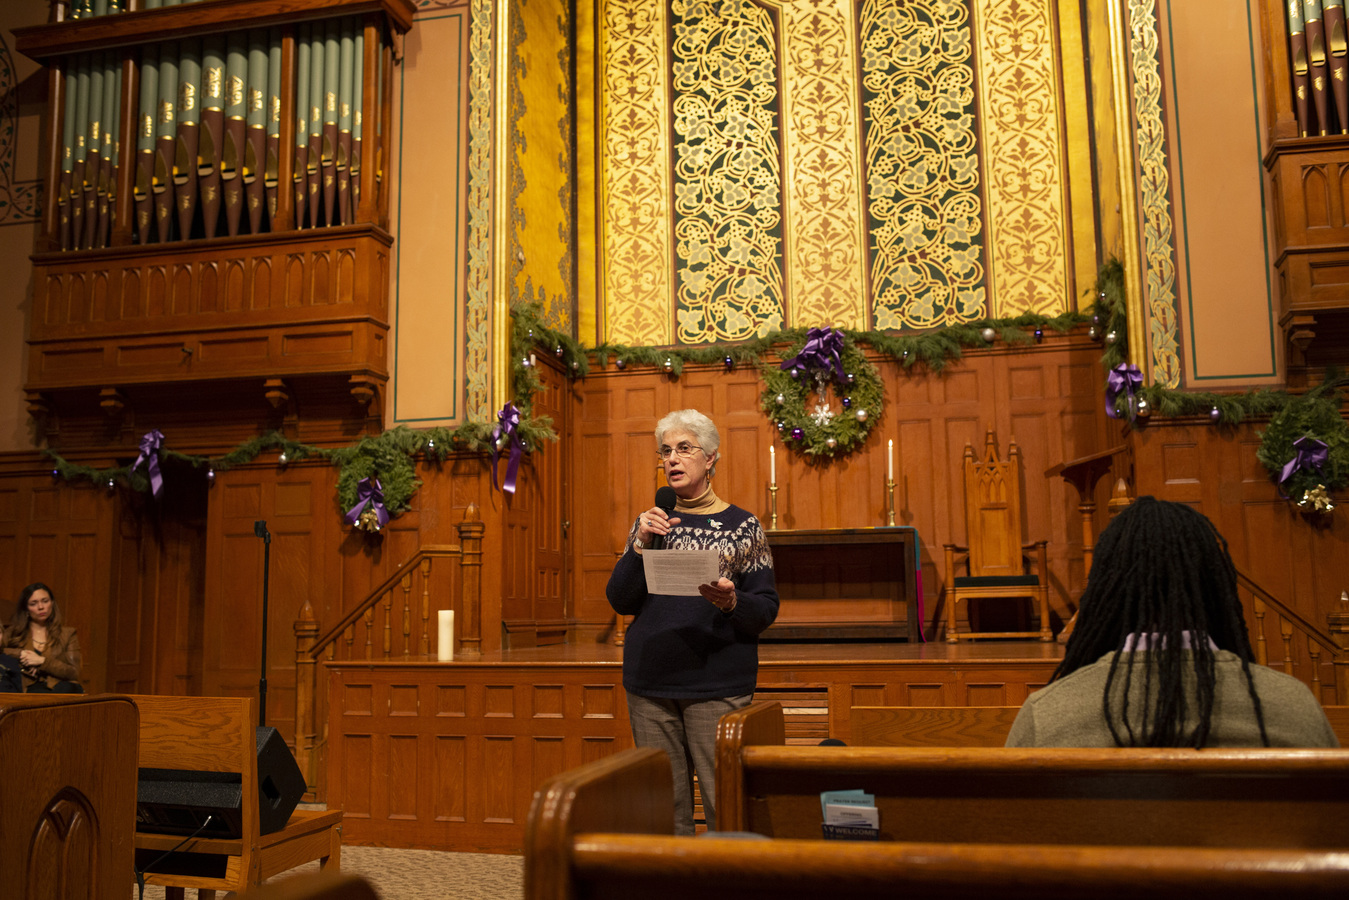 Say No To War Interfaith Peace Vigil Middle Collegiate Church 1/7/20 Rosemarie Pace, ED of Pax Christi Metro New York/Catholic Peace Movement